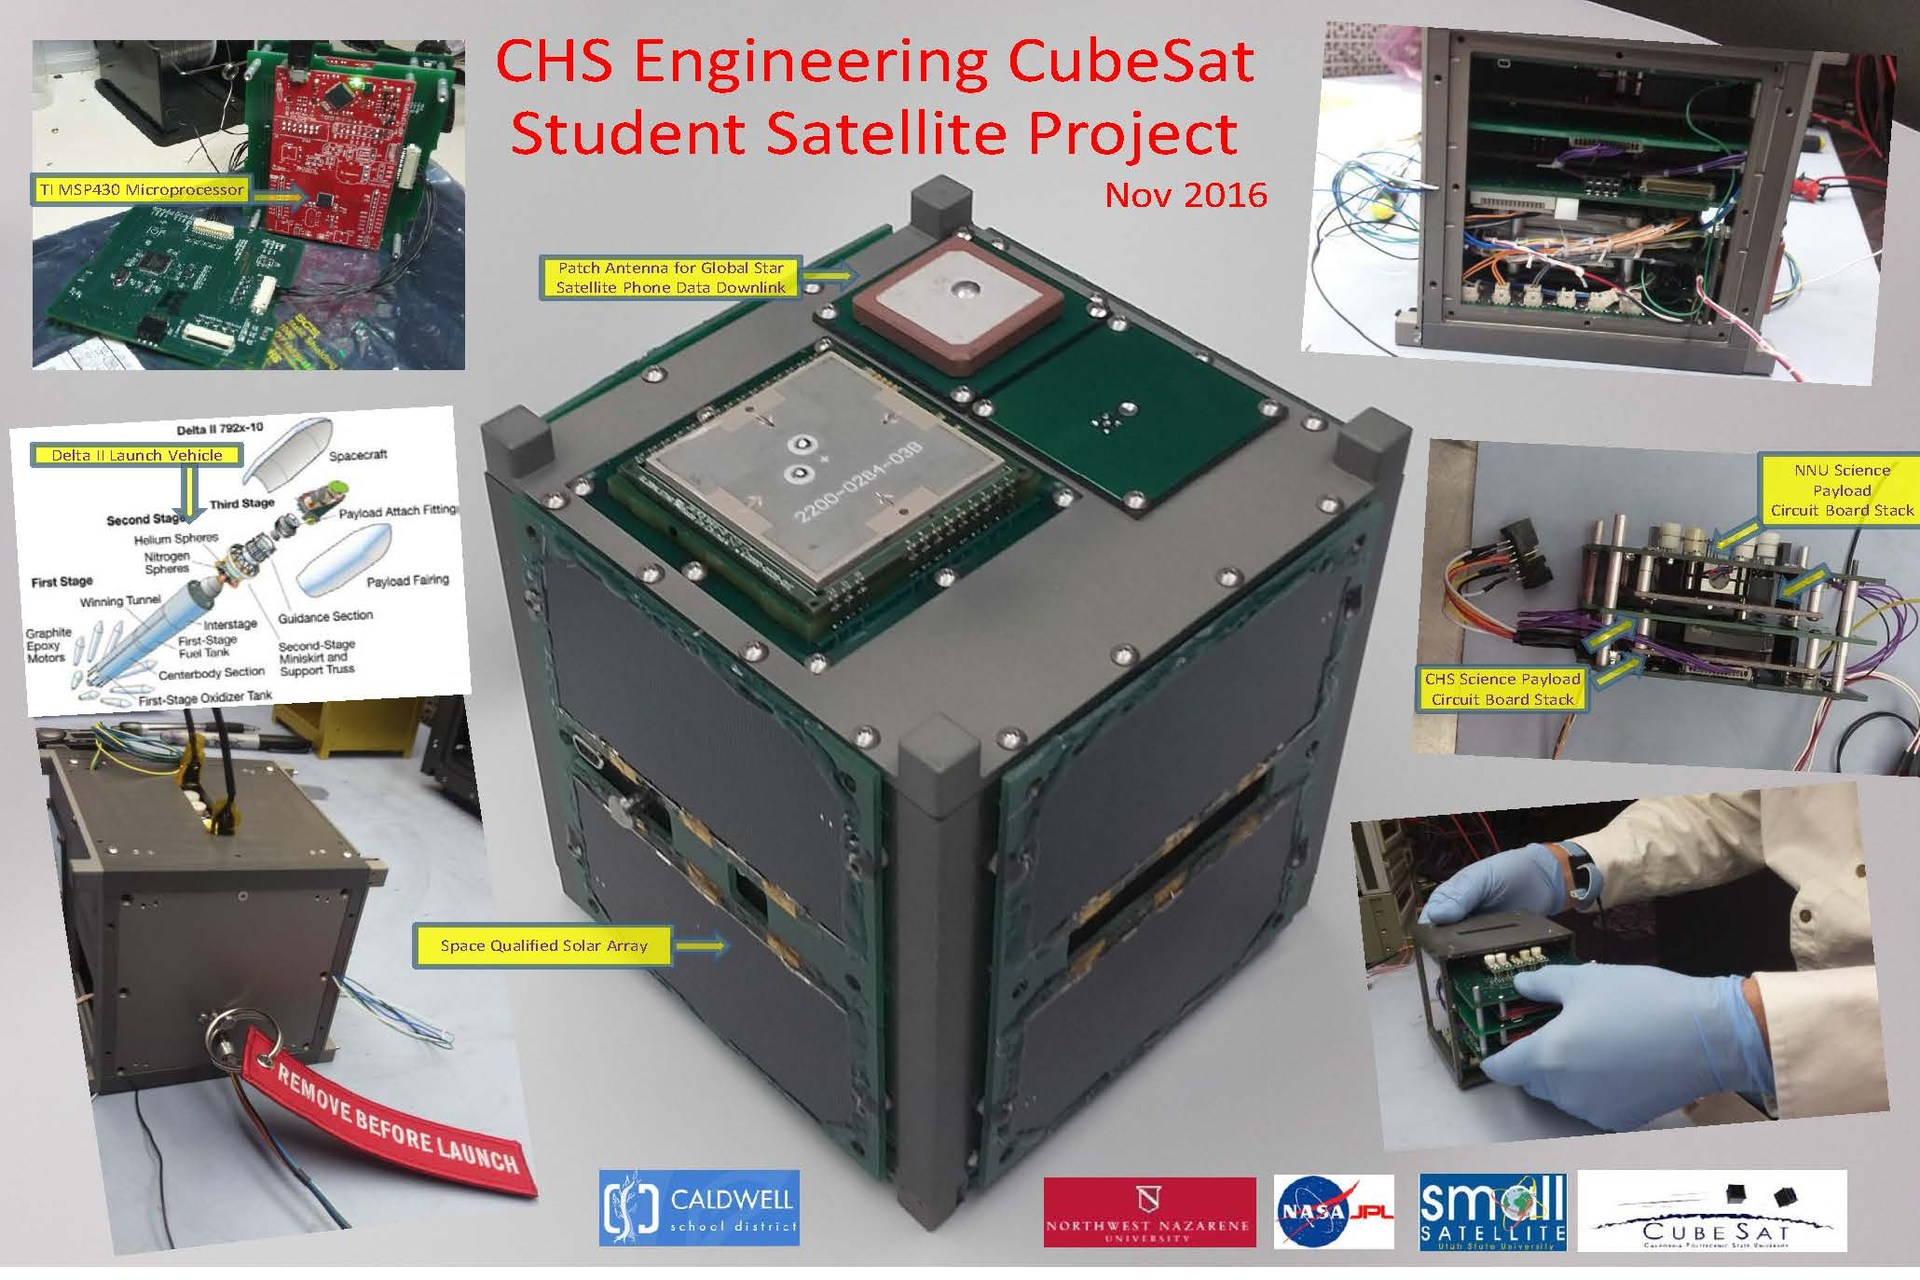 CubeSAT with depictions of components